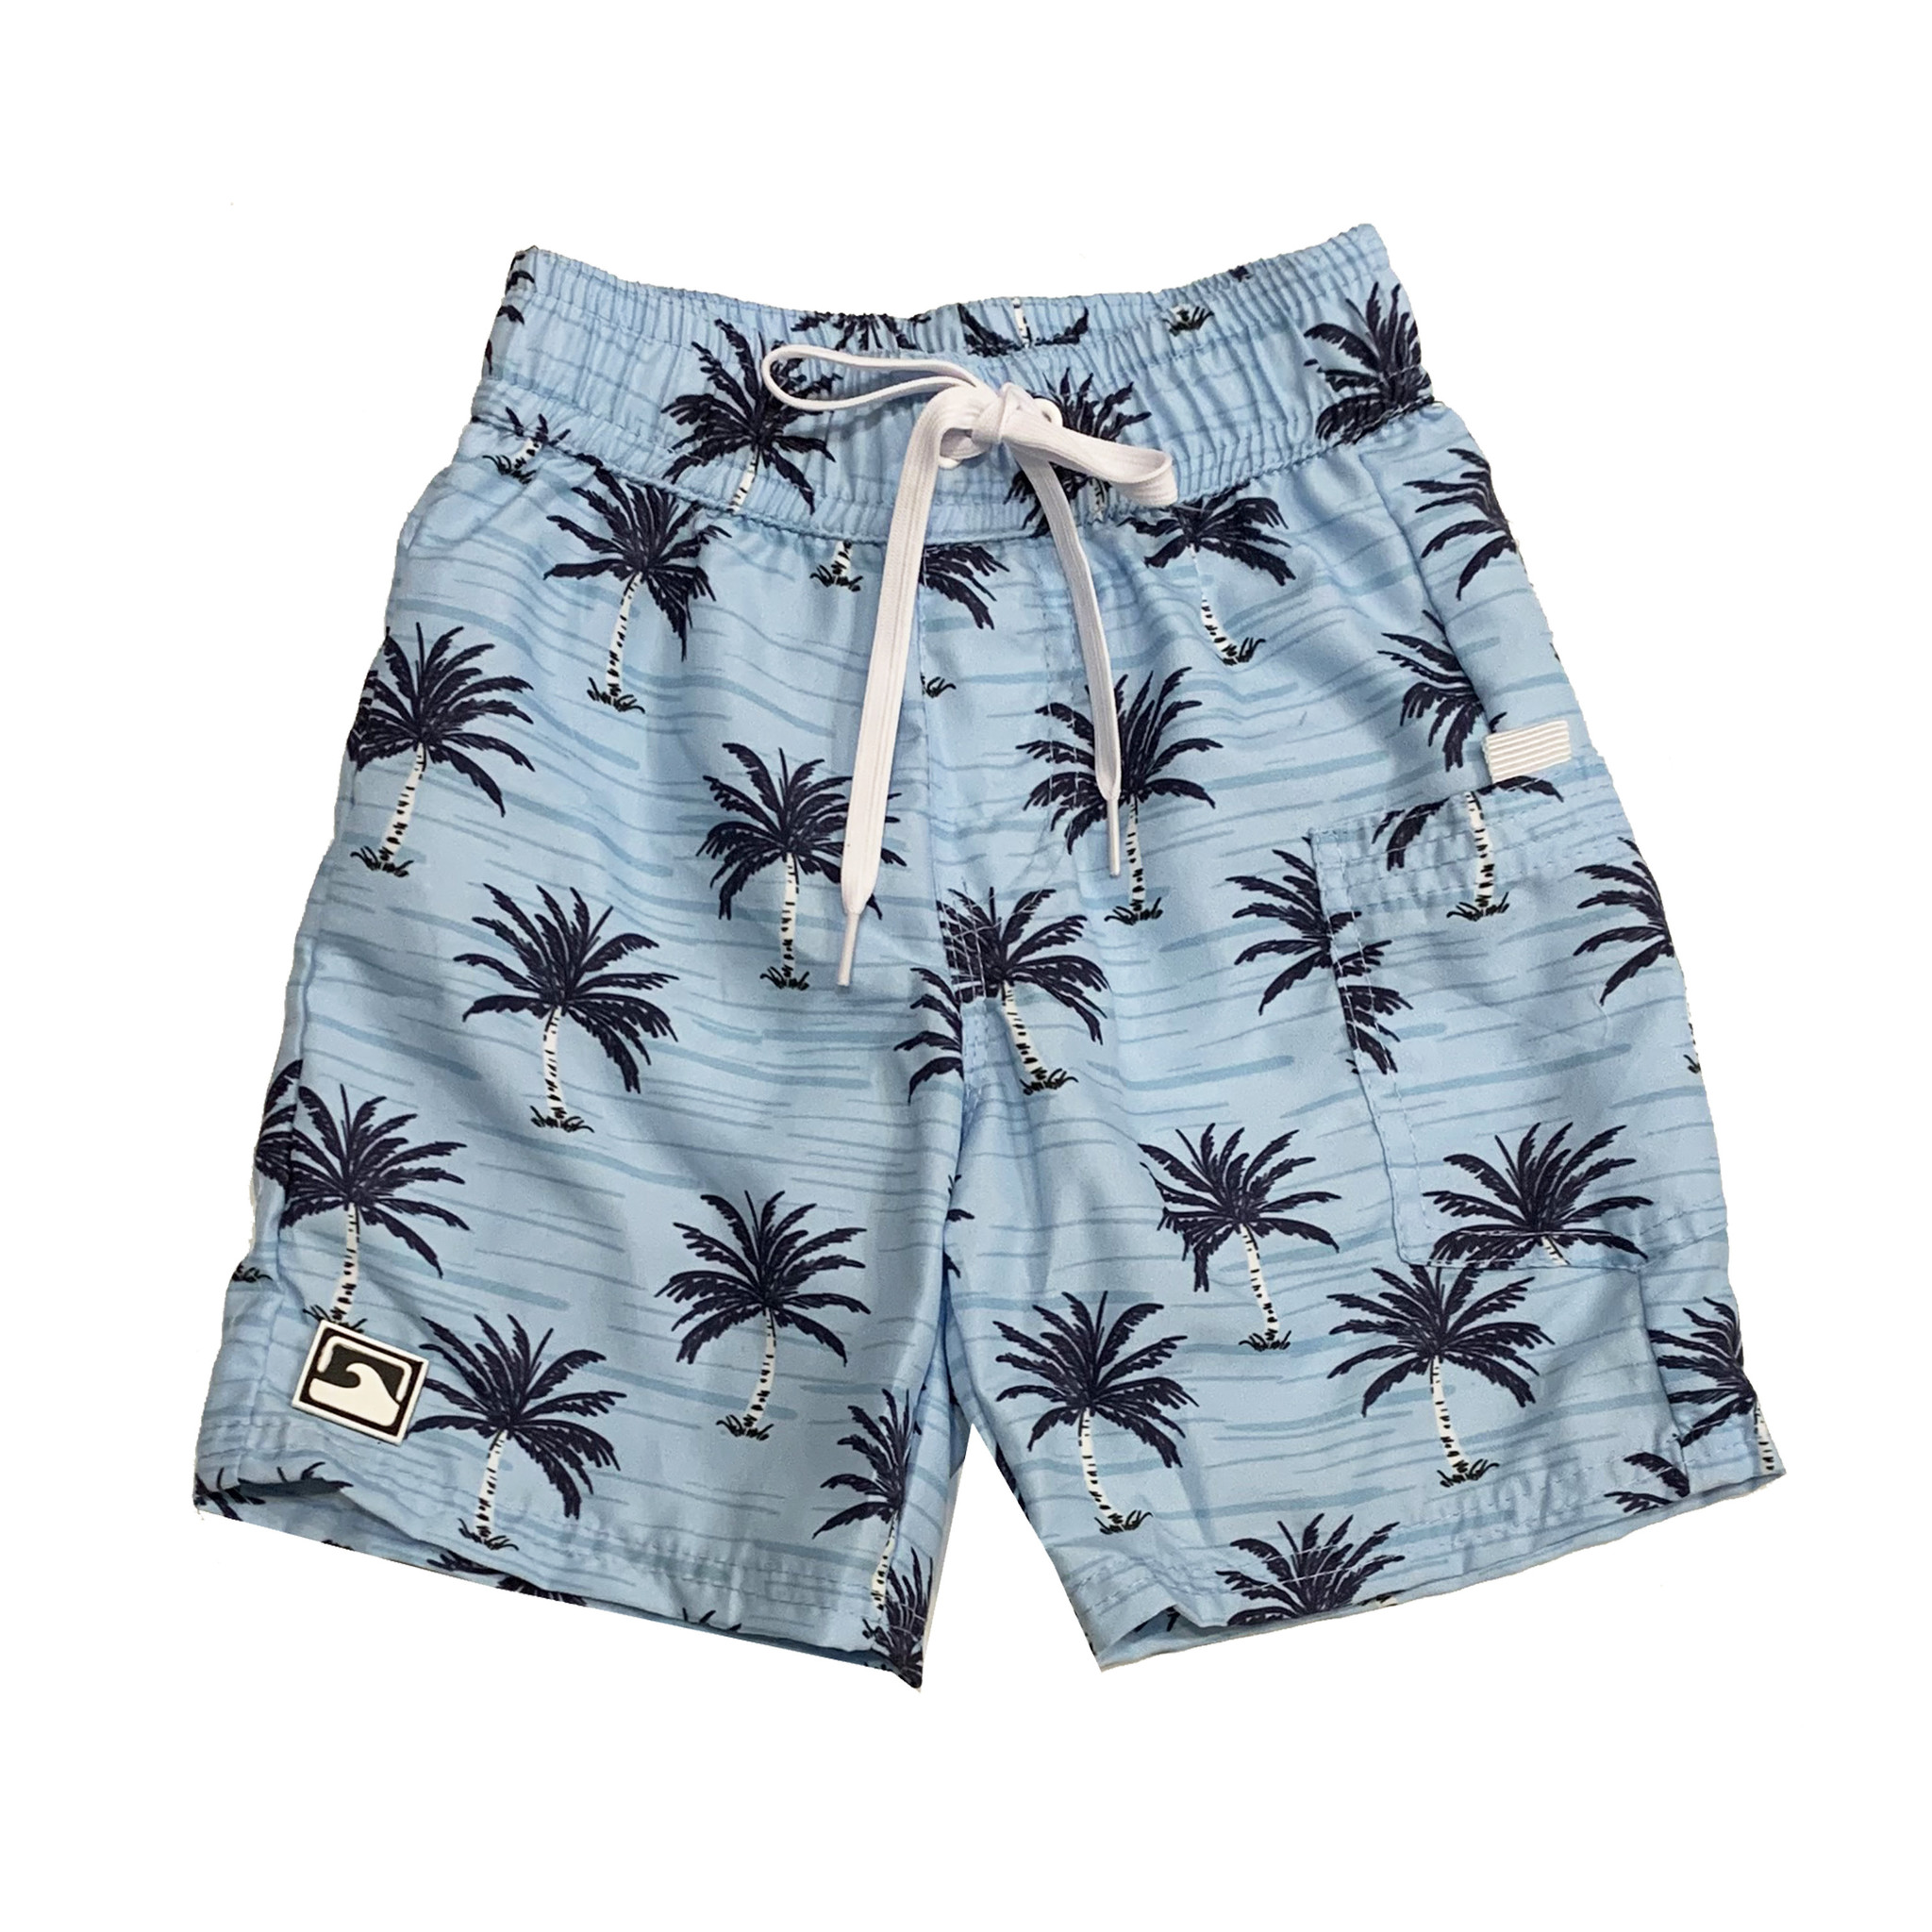 Coral Reef Ocean Palm Swimshorts